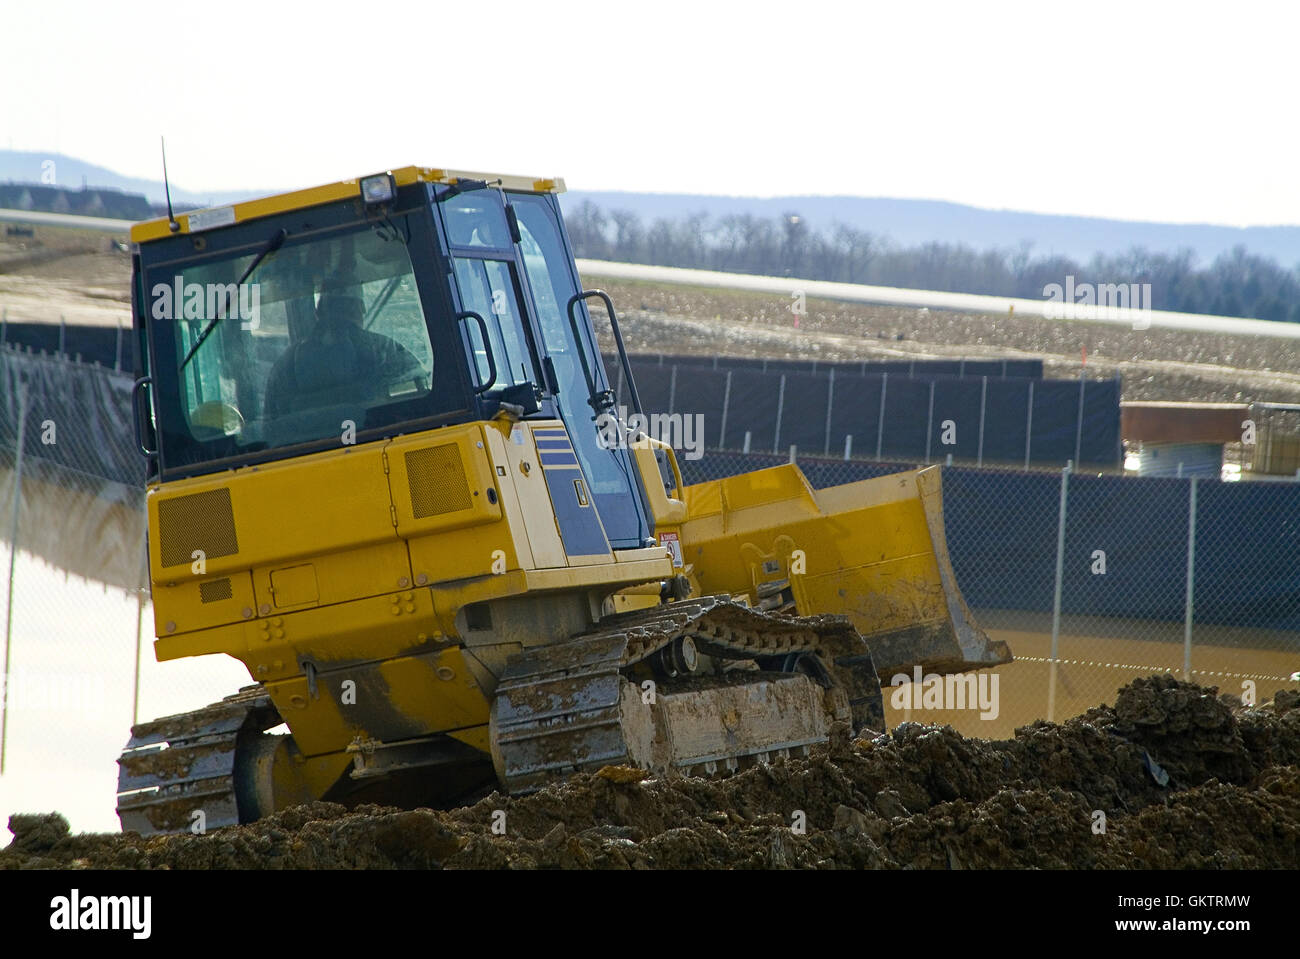 Rear View Of Bulldozer On Construction Site - Stock Image